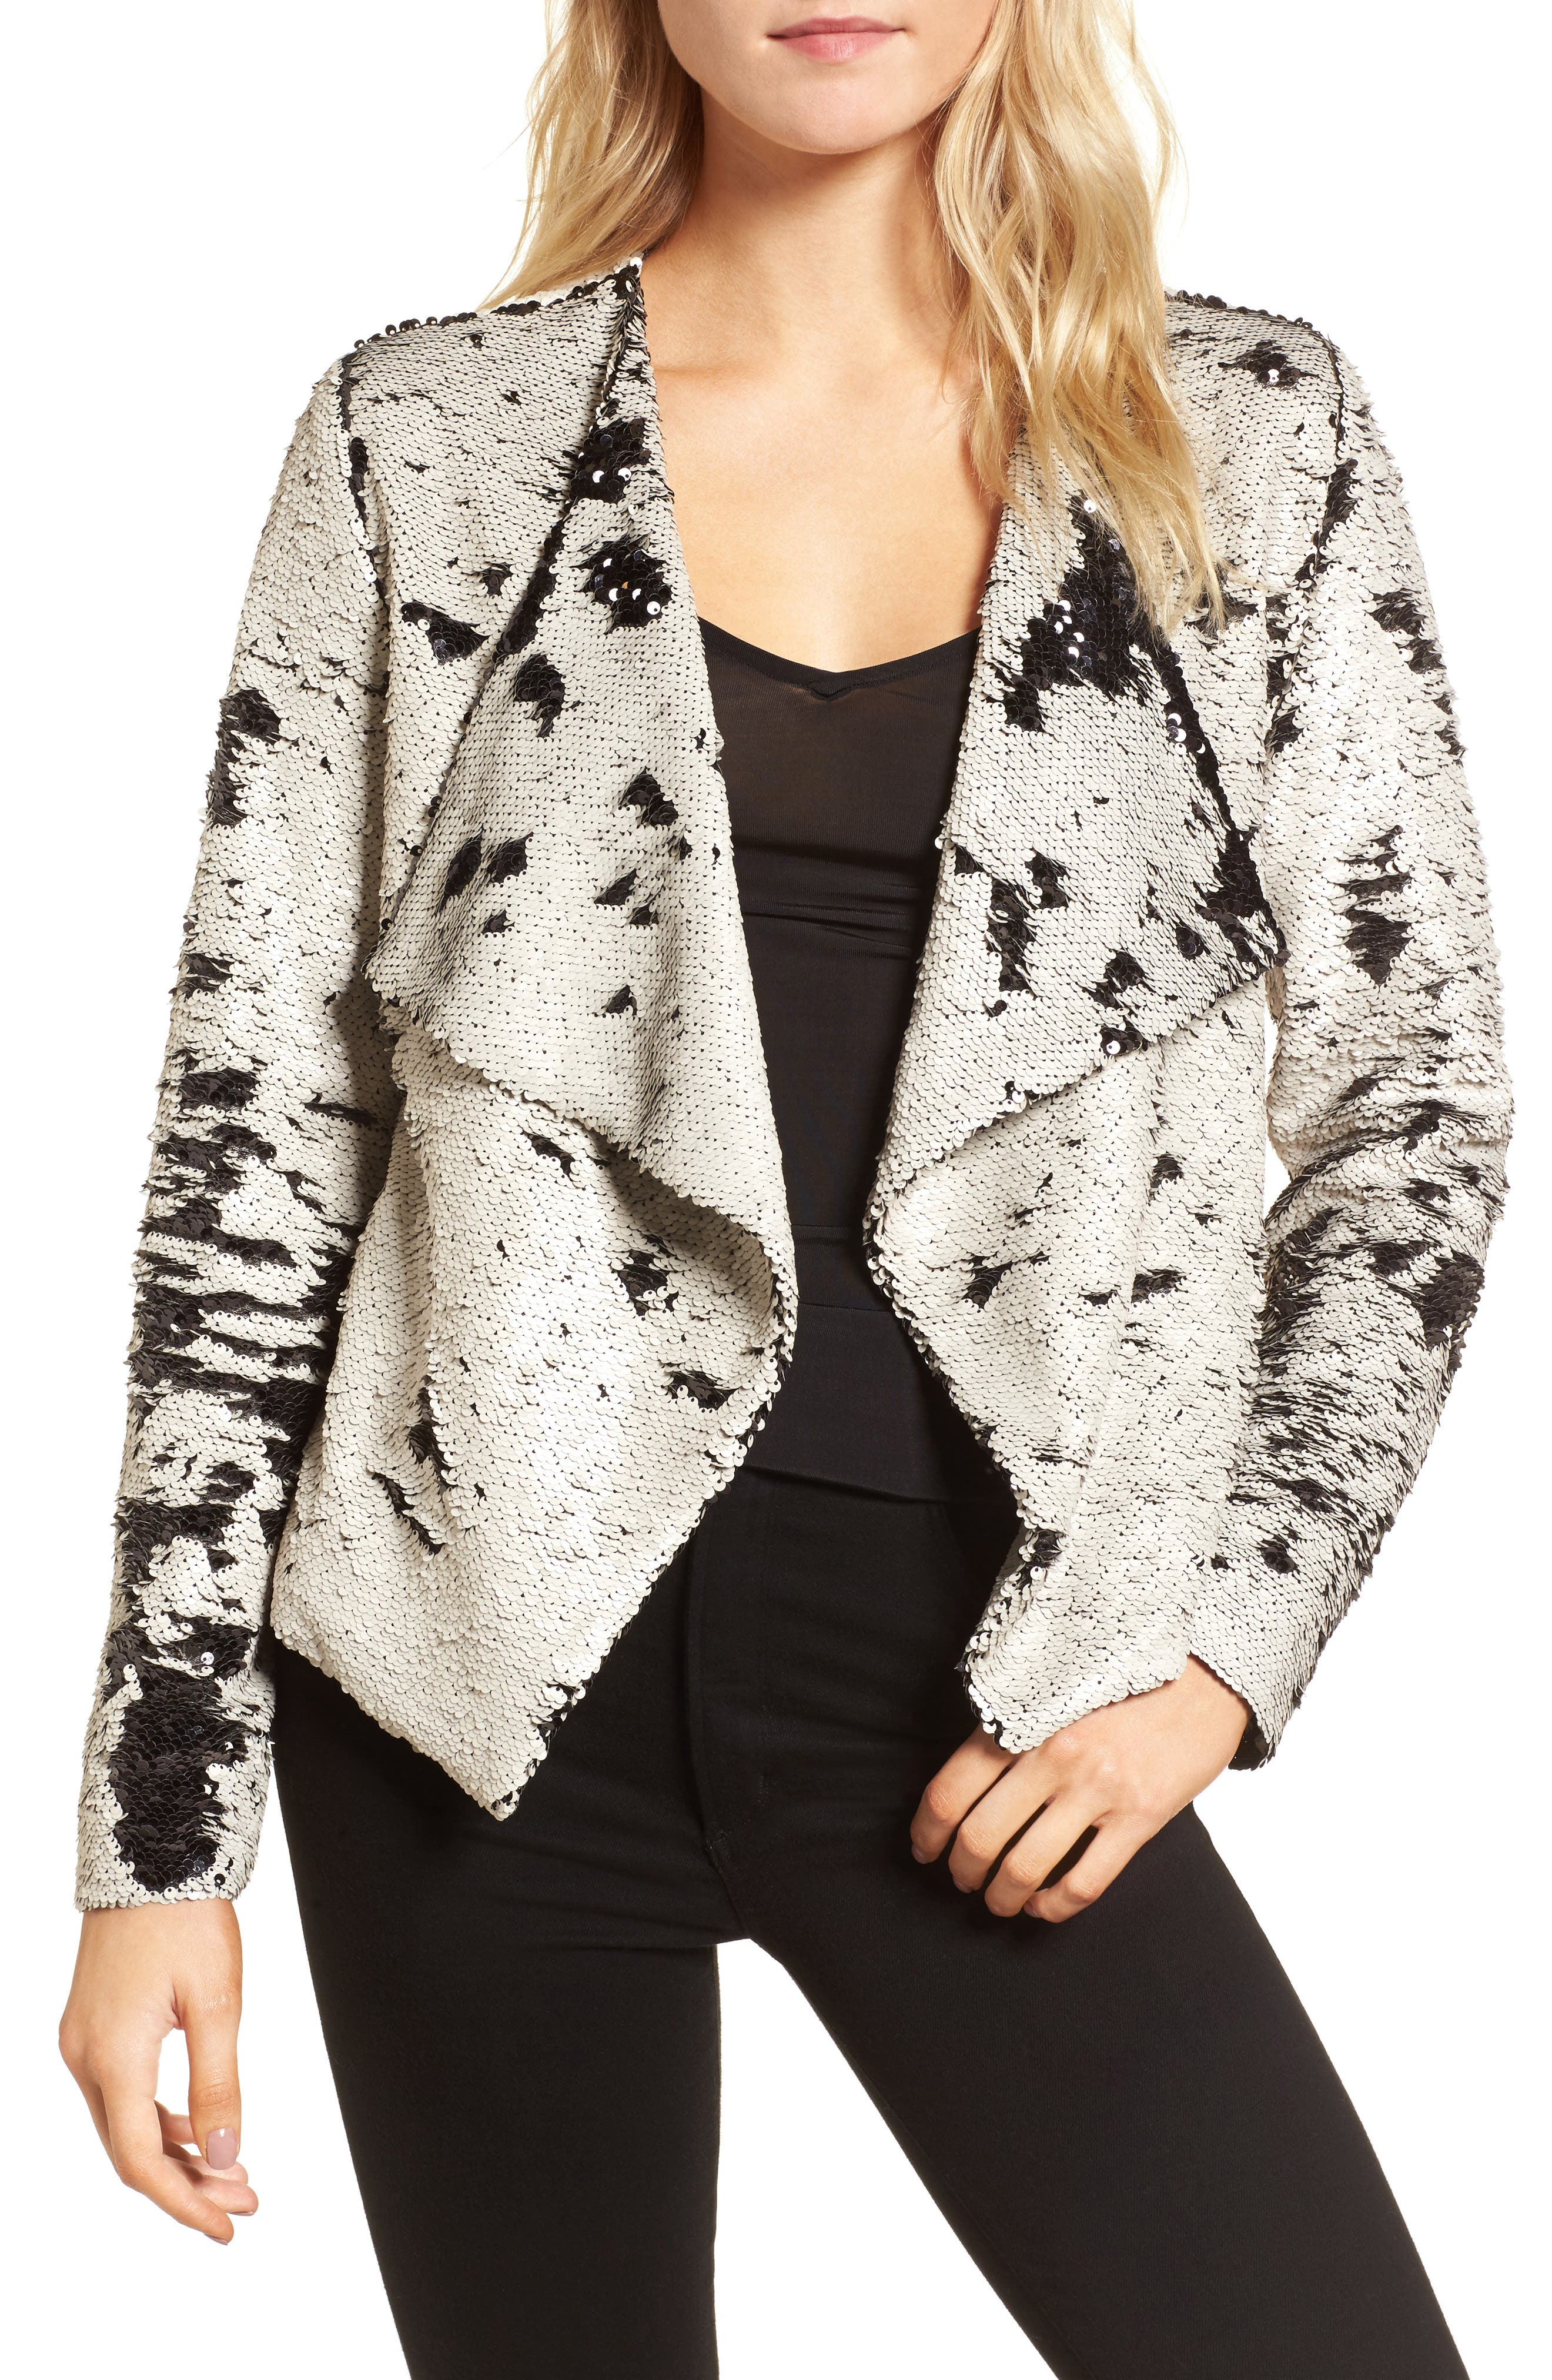 cupcakes and cashmere Clothing   Nordstrom